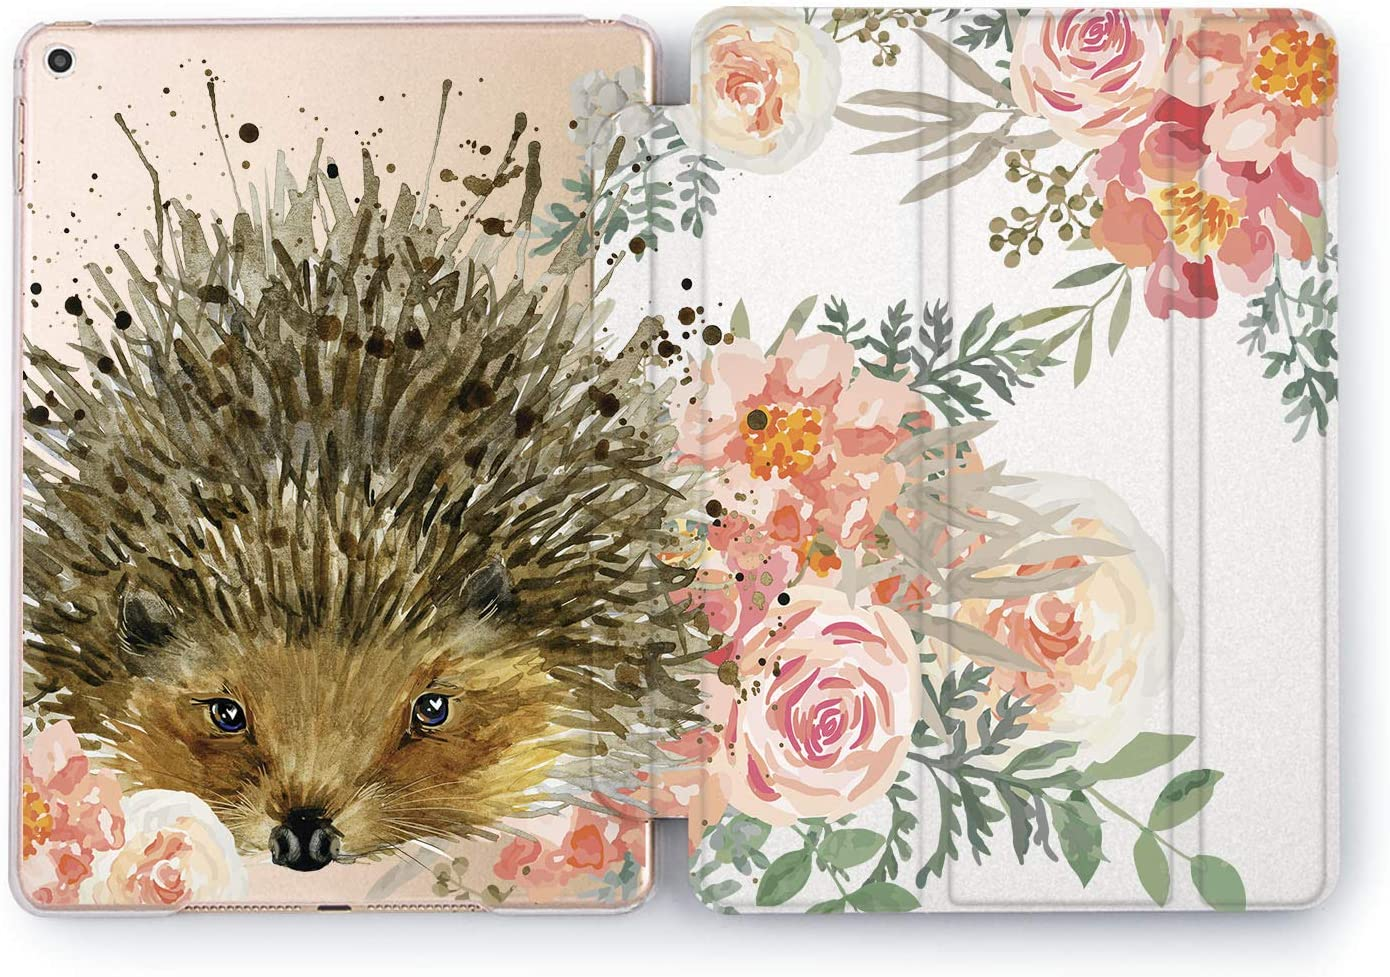 Wonder Wild Case Compatible with Apple iPad Floral Hedgehog 9.7 Pro inch Mini 1 2 3 4 Air 2 10.5 12.9 11 10.2 5th 6th Gen Hard Cover Animals Flowers Peonies Rose Petal Cute Adorable Girly Style